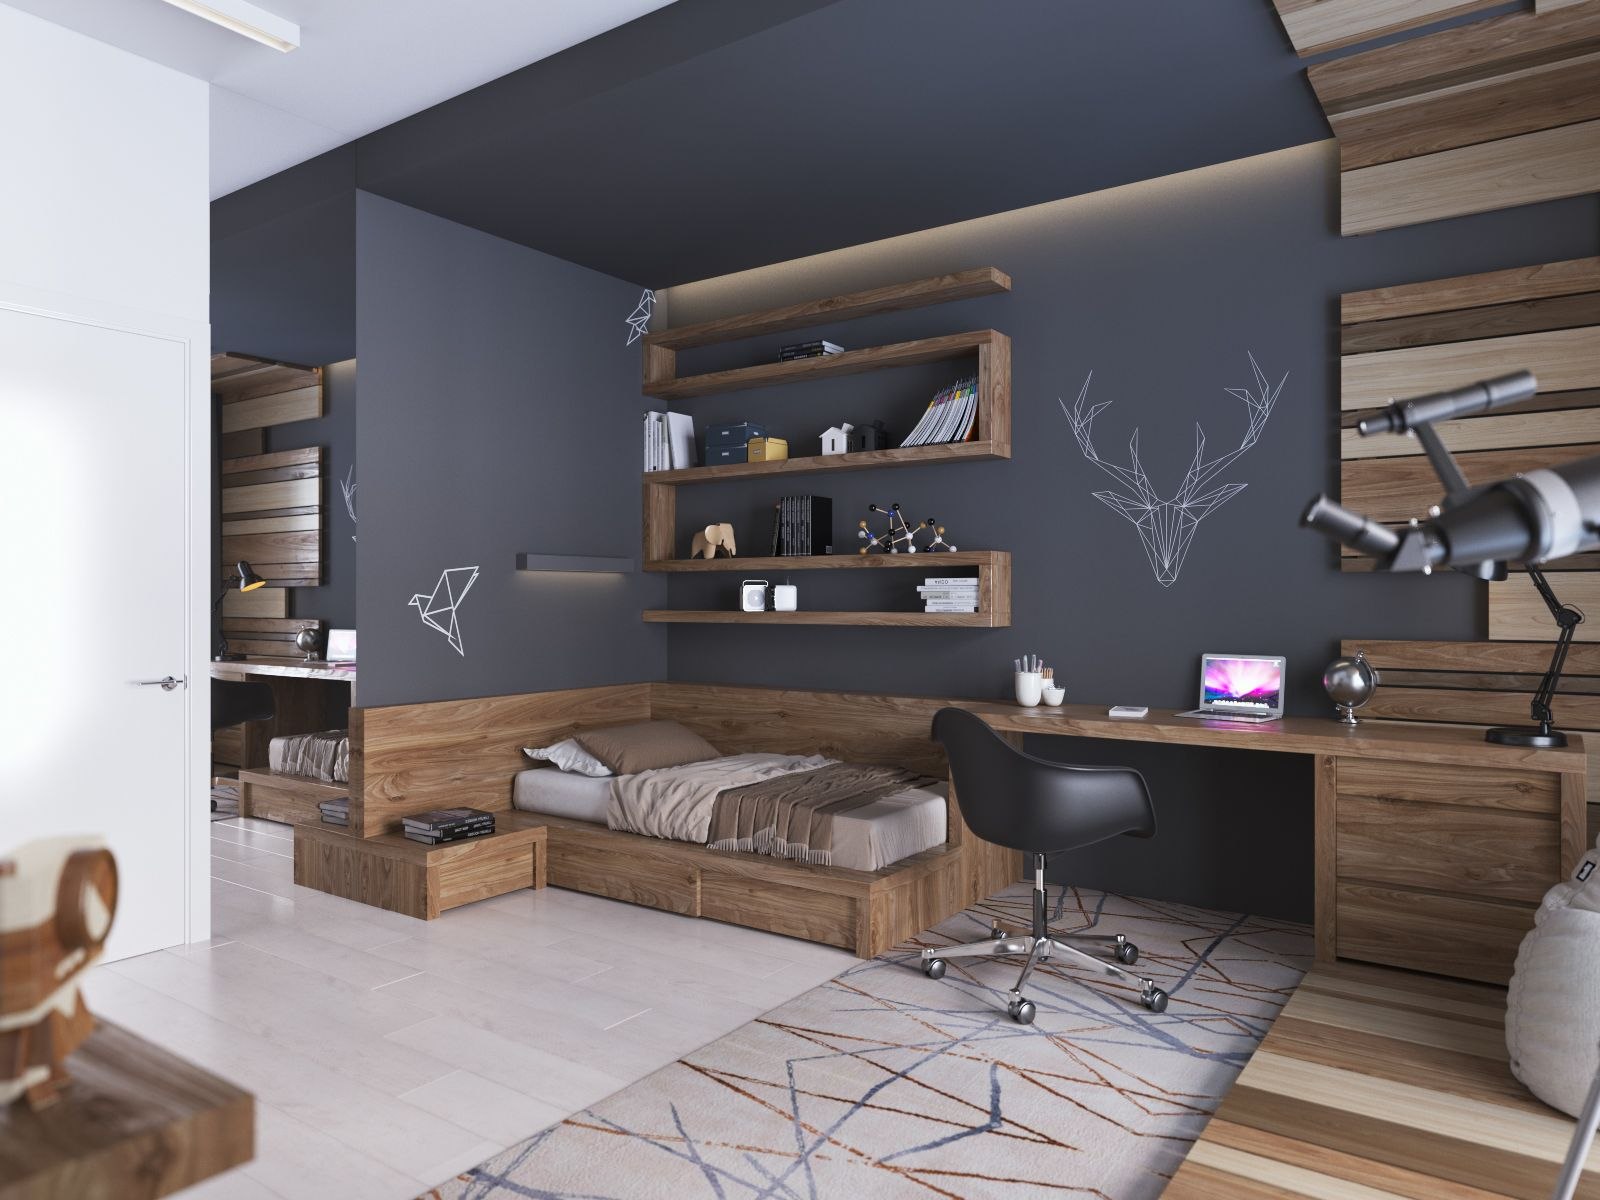 Pin By Interior Designer In A Box On Kids Teenager: Teenager Room In Contemporary Style